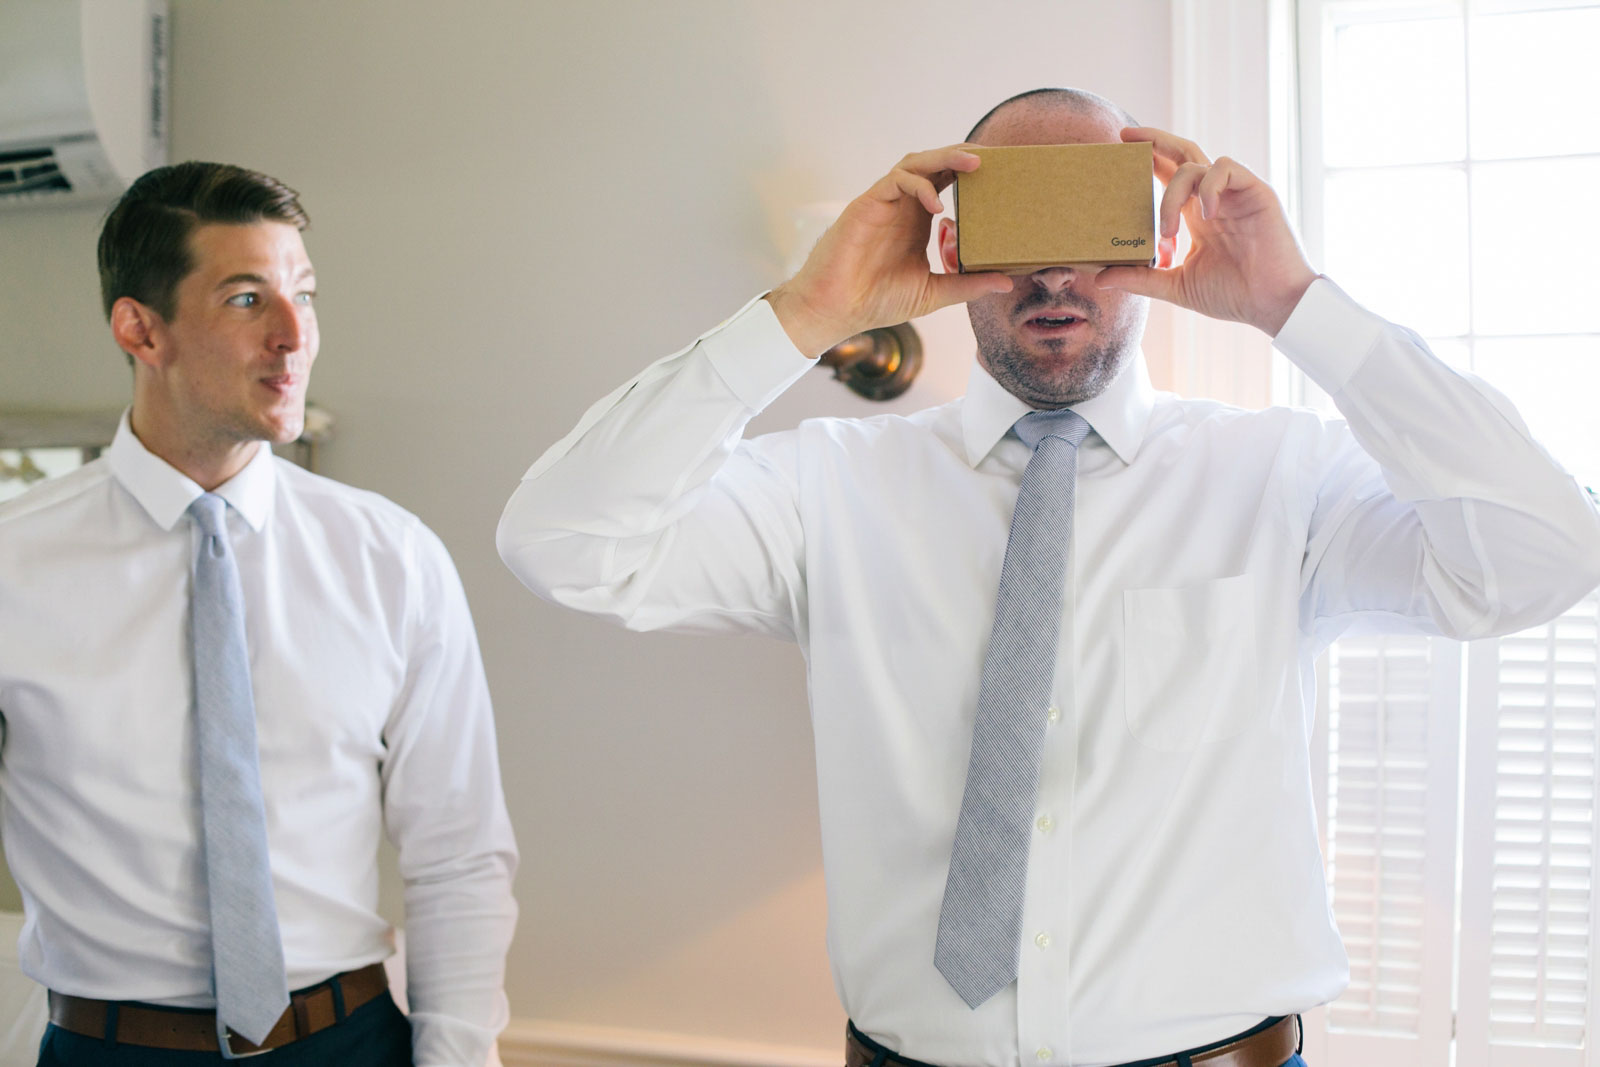 Groomsmen opening their gifts, groomsman playing with google cardboard